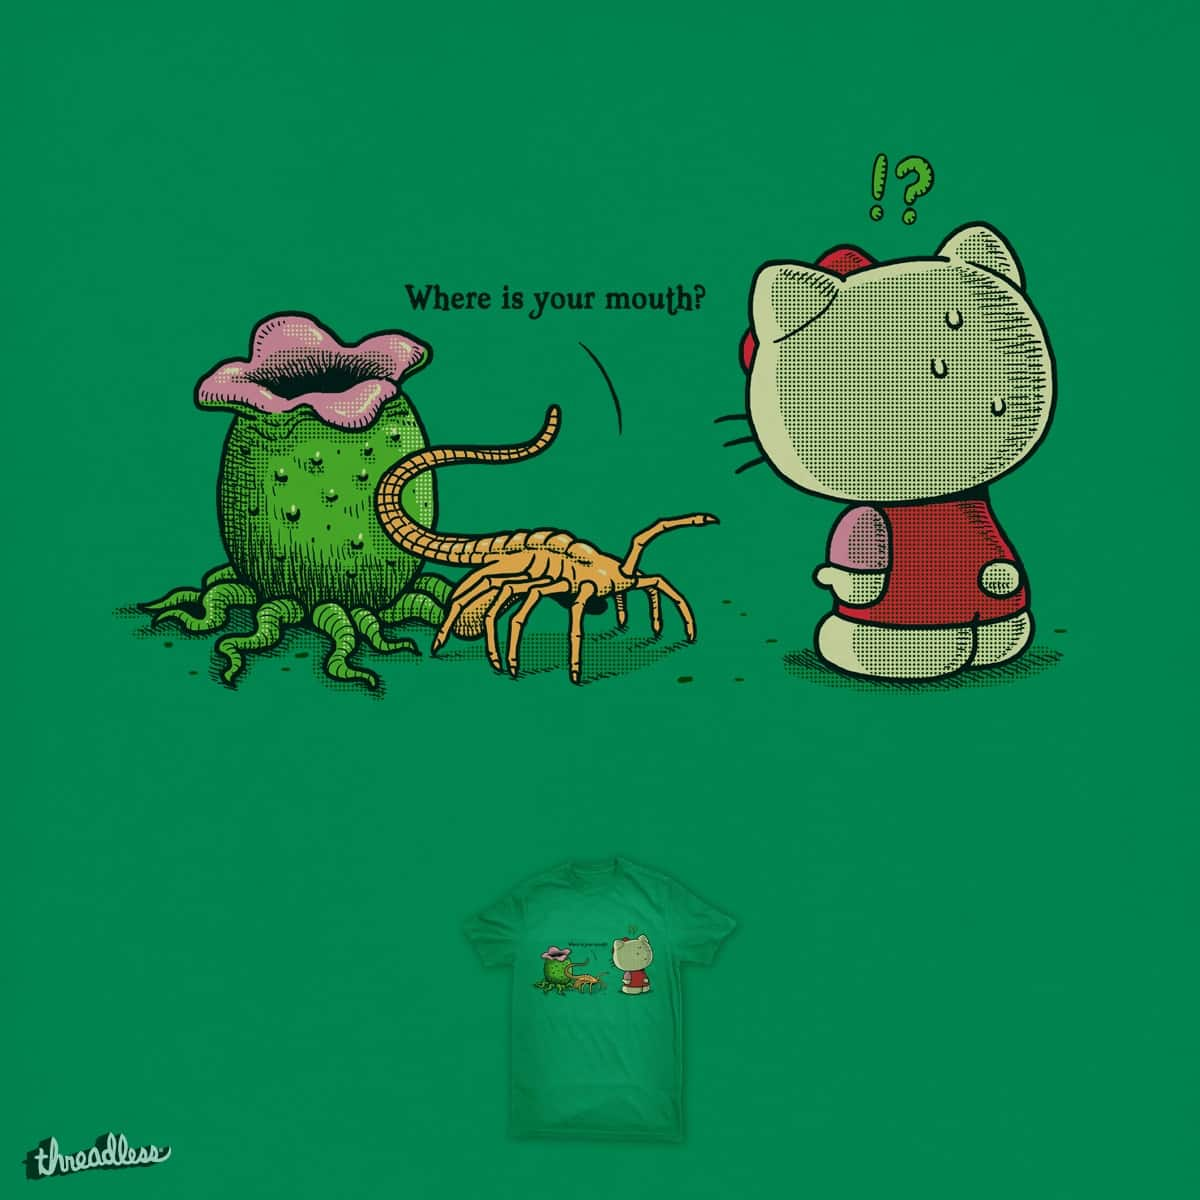 Where Is Your Mouth? by ben chen on Threadless